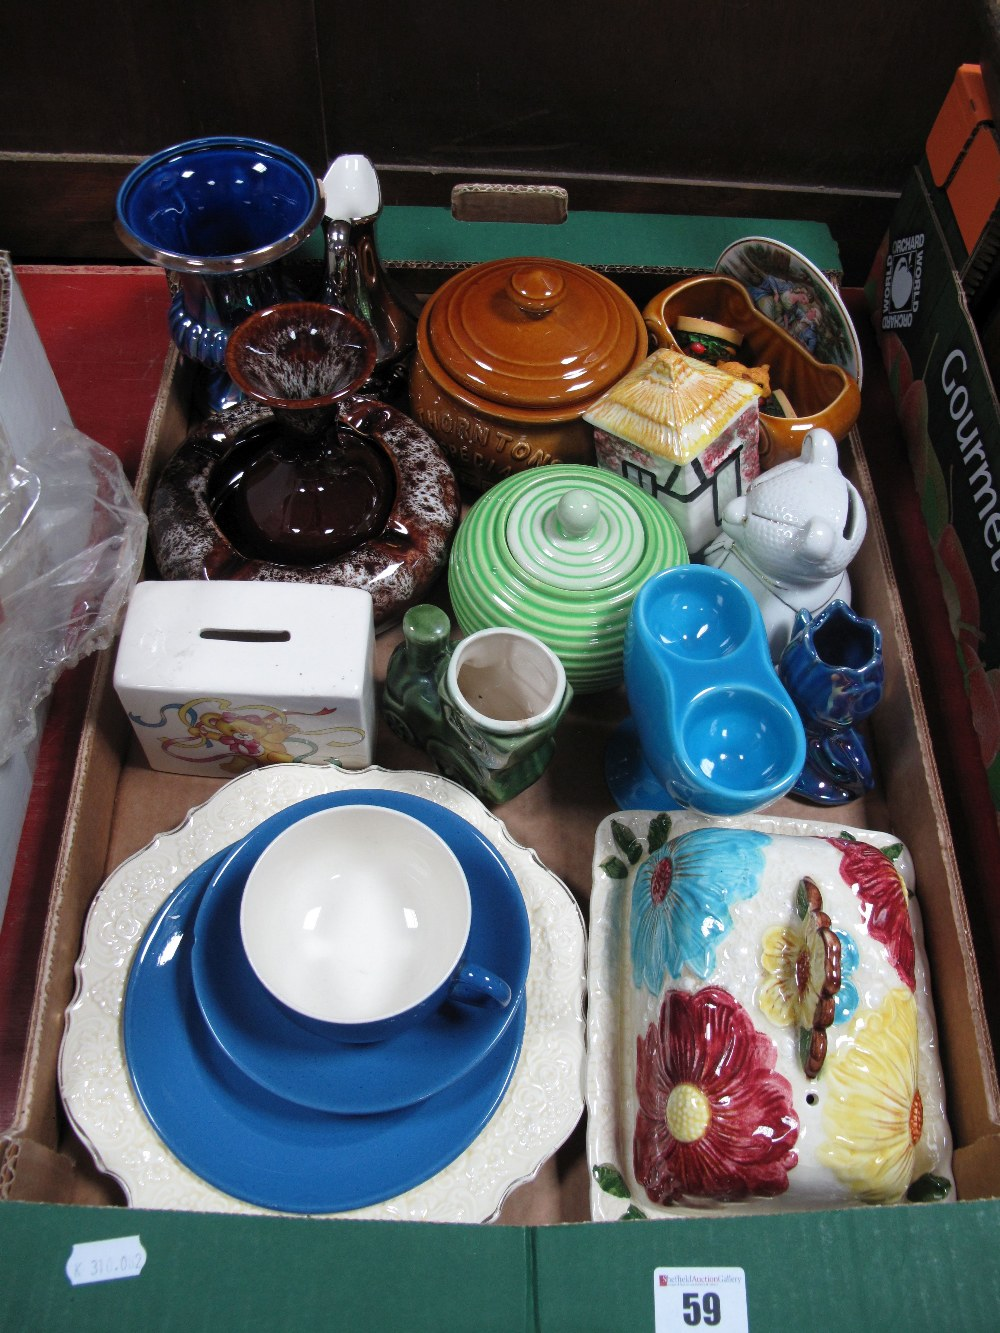 Lot 59 - A Moorcroft Pottery Trio, (saucer chip), money boxes, Price cheese dish, other ceramics:- One Box